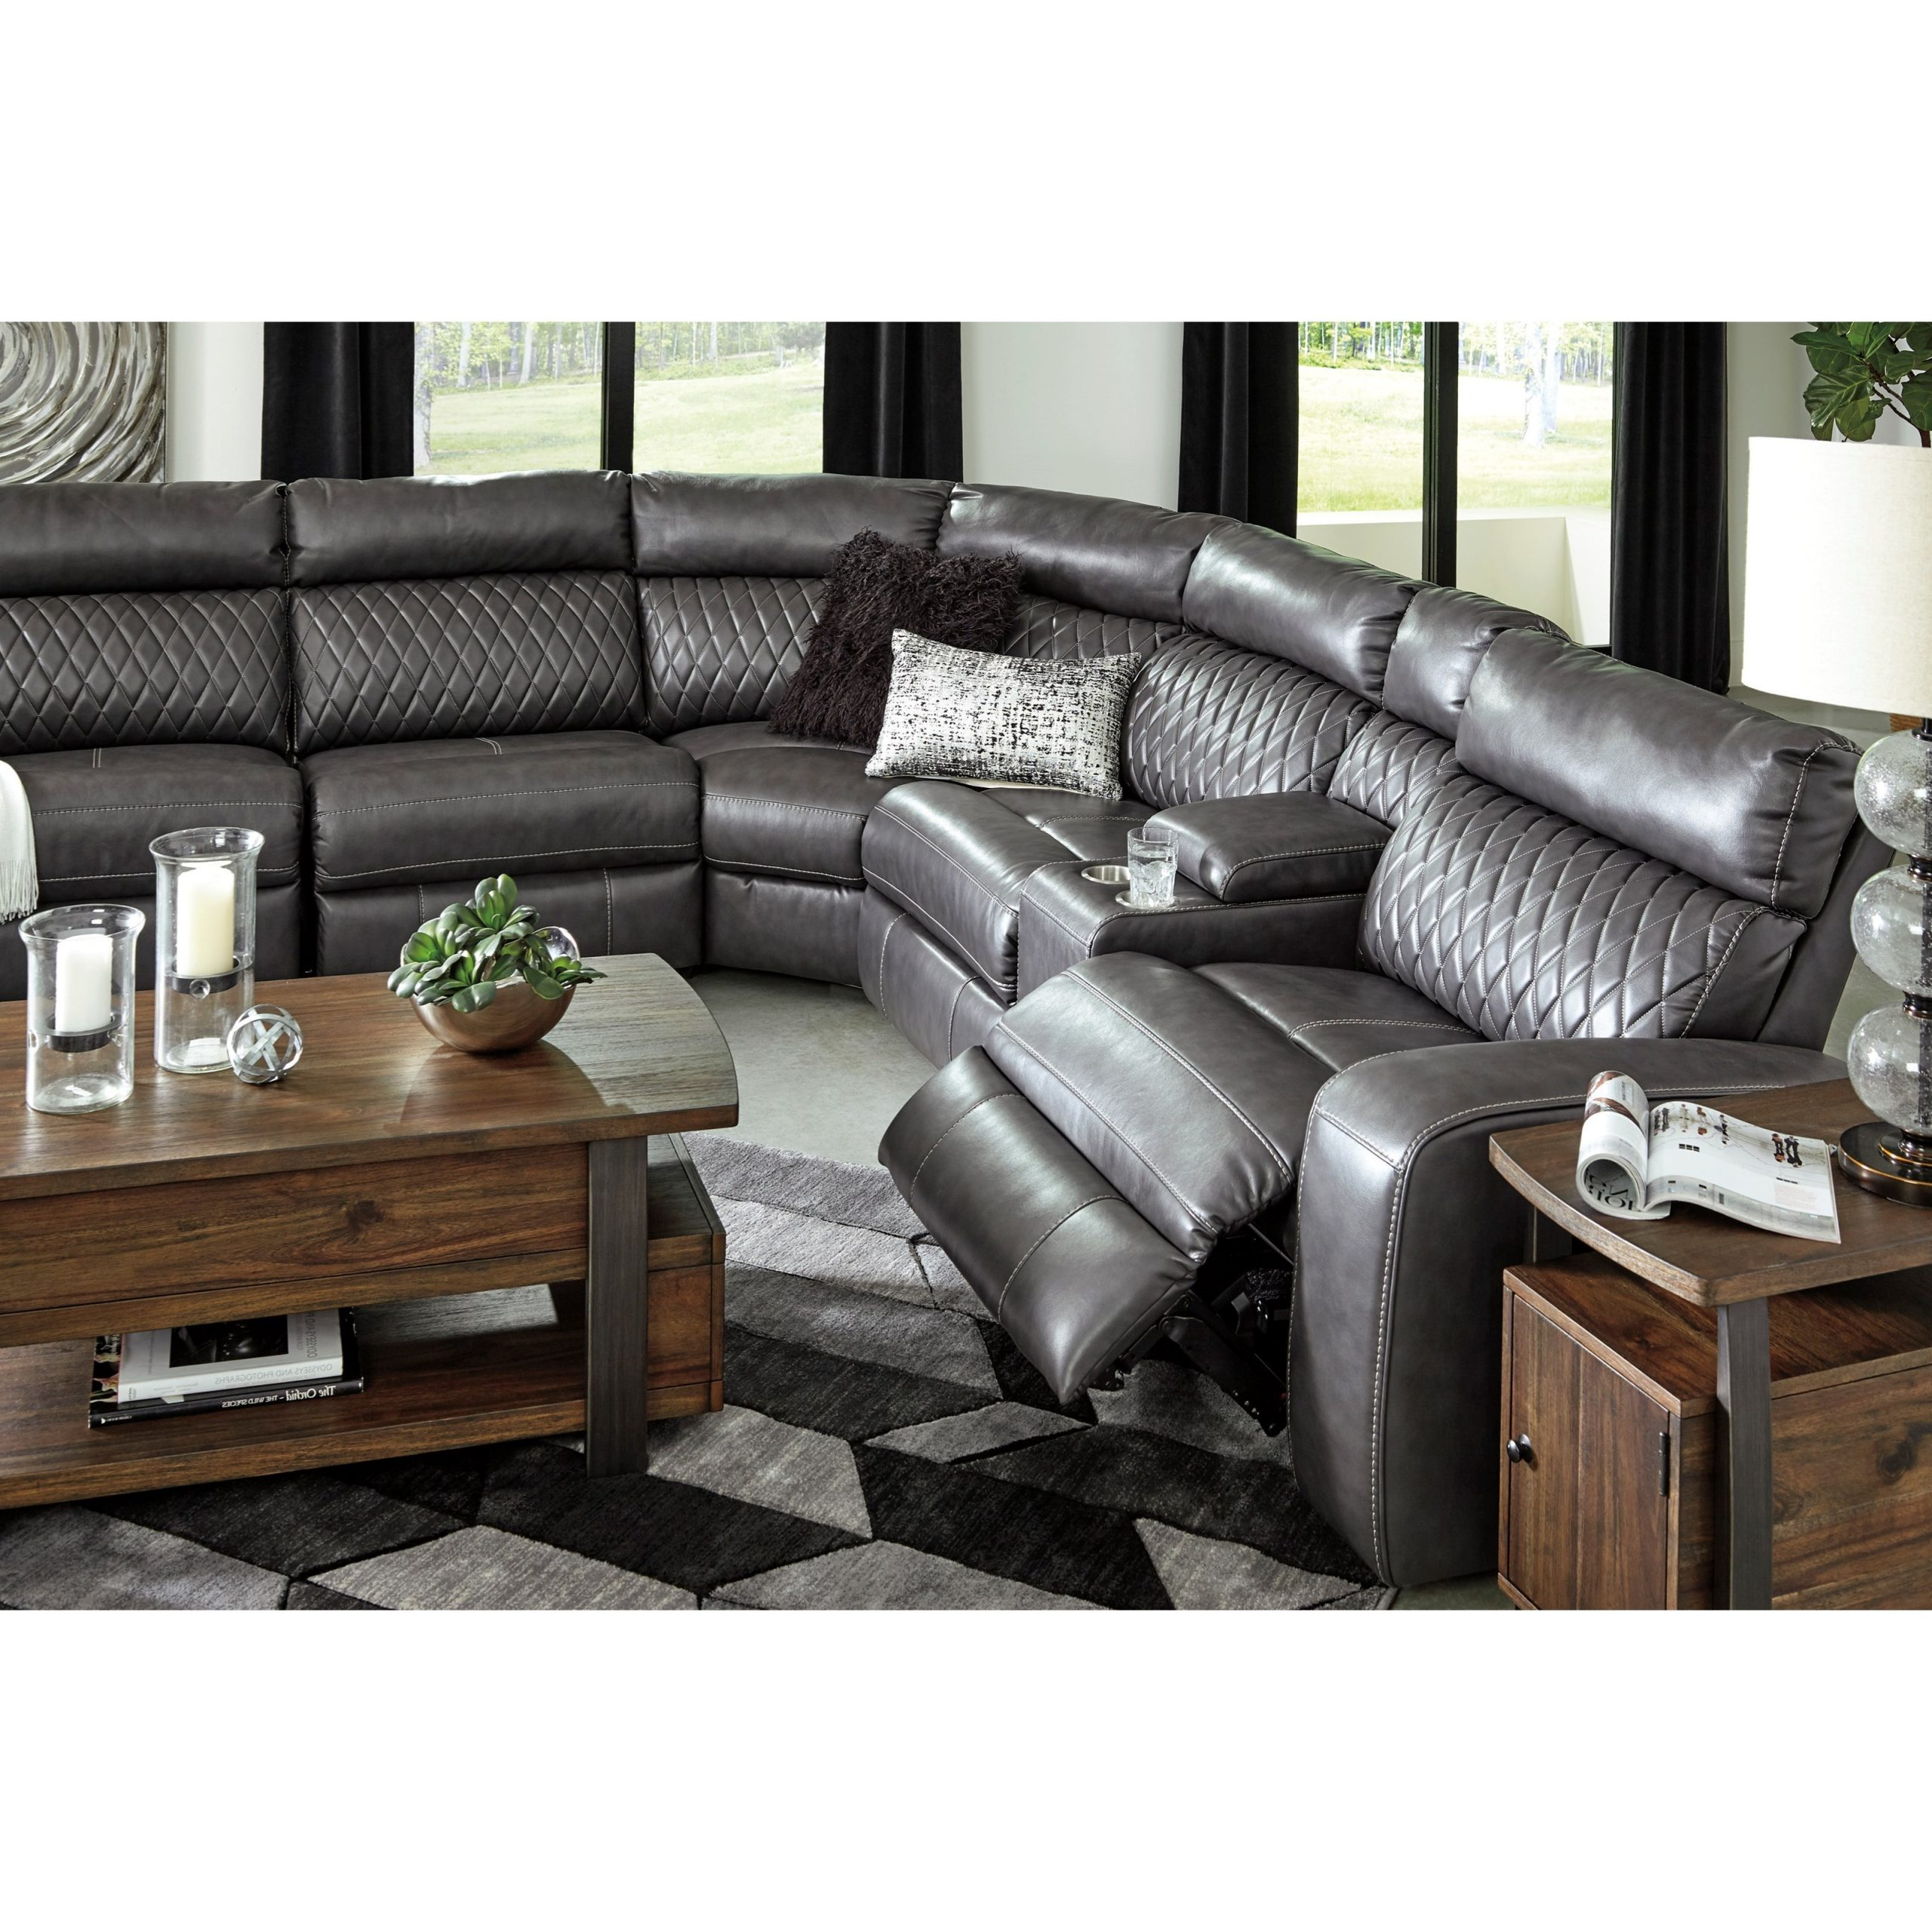 Most Recently Released Celine Sectional Futon Sofas With Storage Reclining Couch For Signature Designashley Samperstone Transitional Power (View 18 of 25)